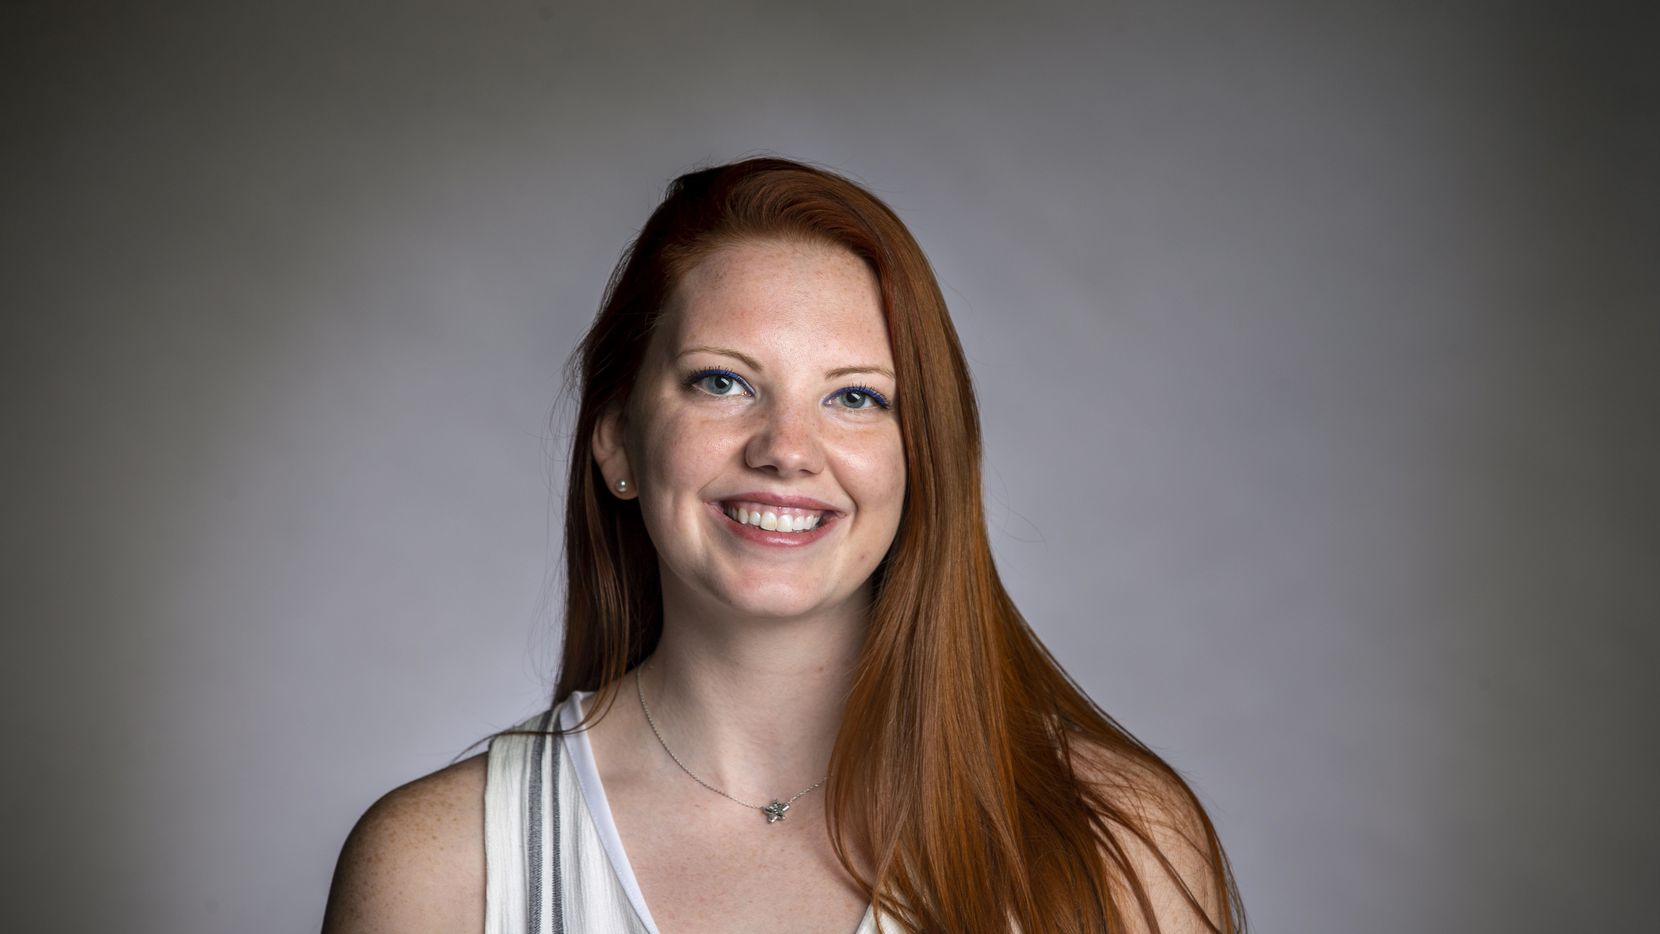 Sports intern Tess DeMeyer poses for a portrait at The Dallas Morning News studio in Dallas on Monday, Aug. 24, 2020.